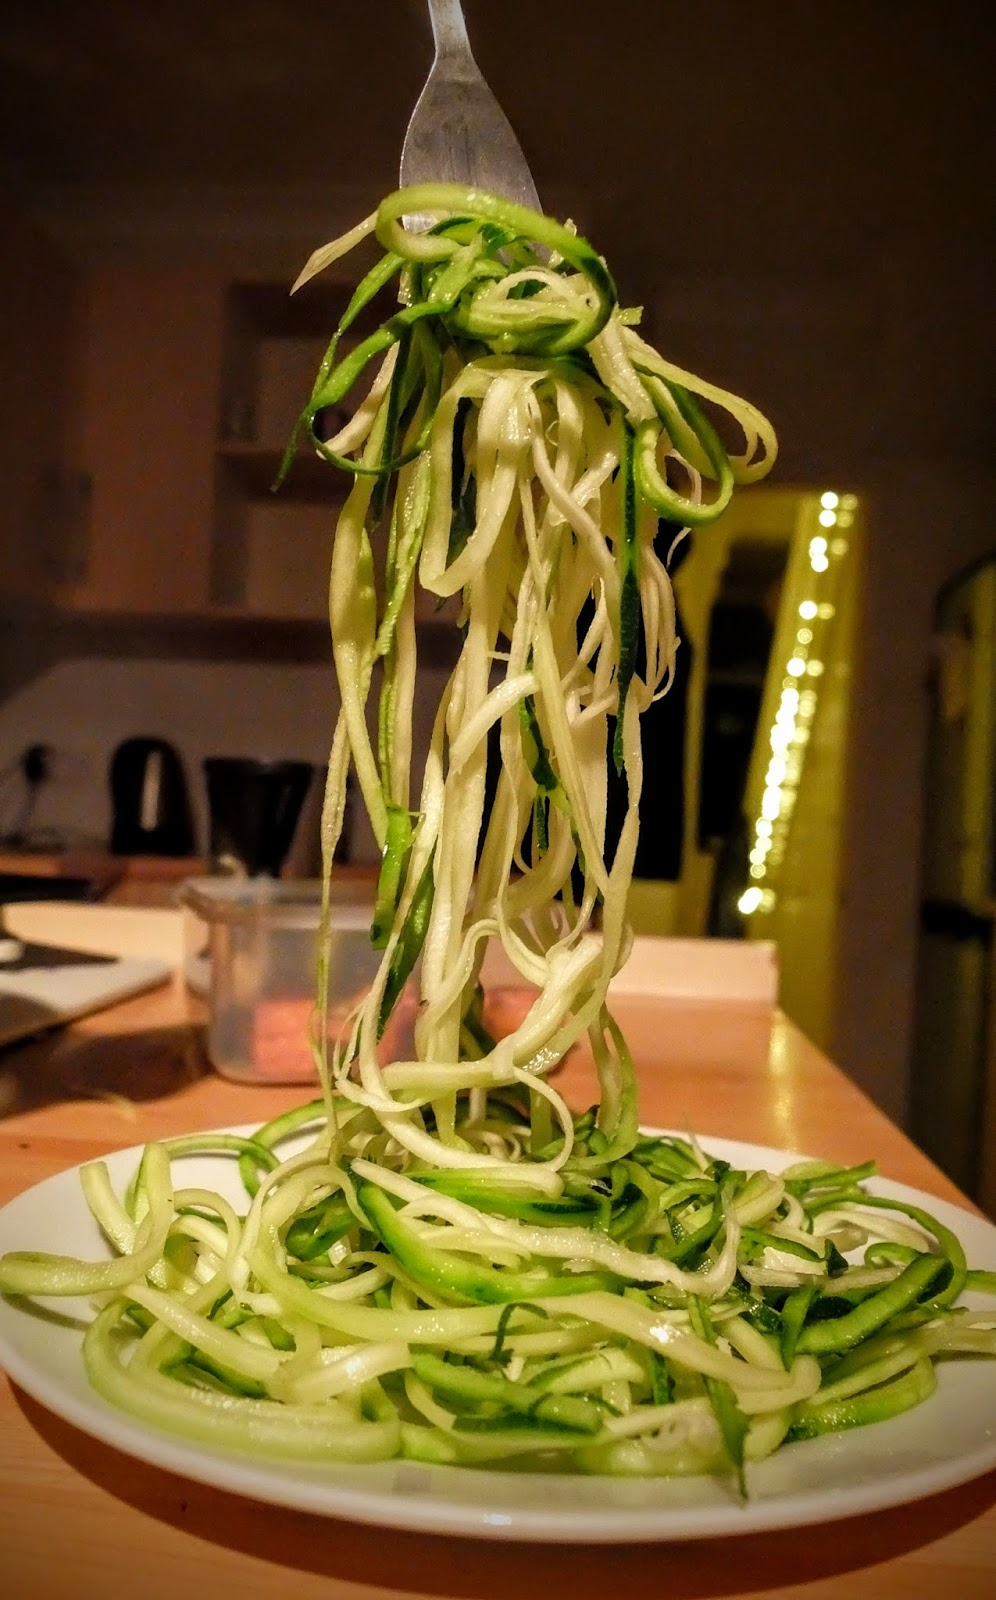 12 reasons why you need a spiralizer